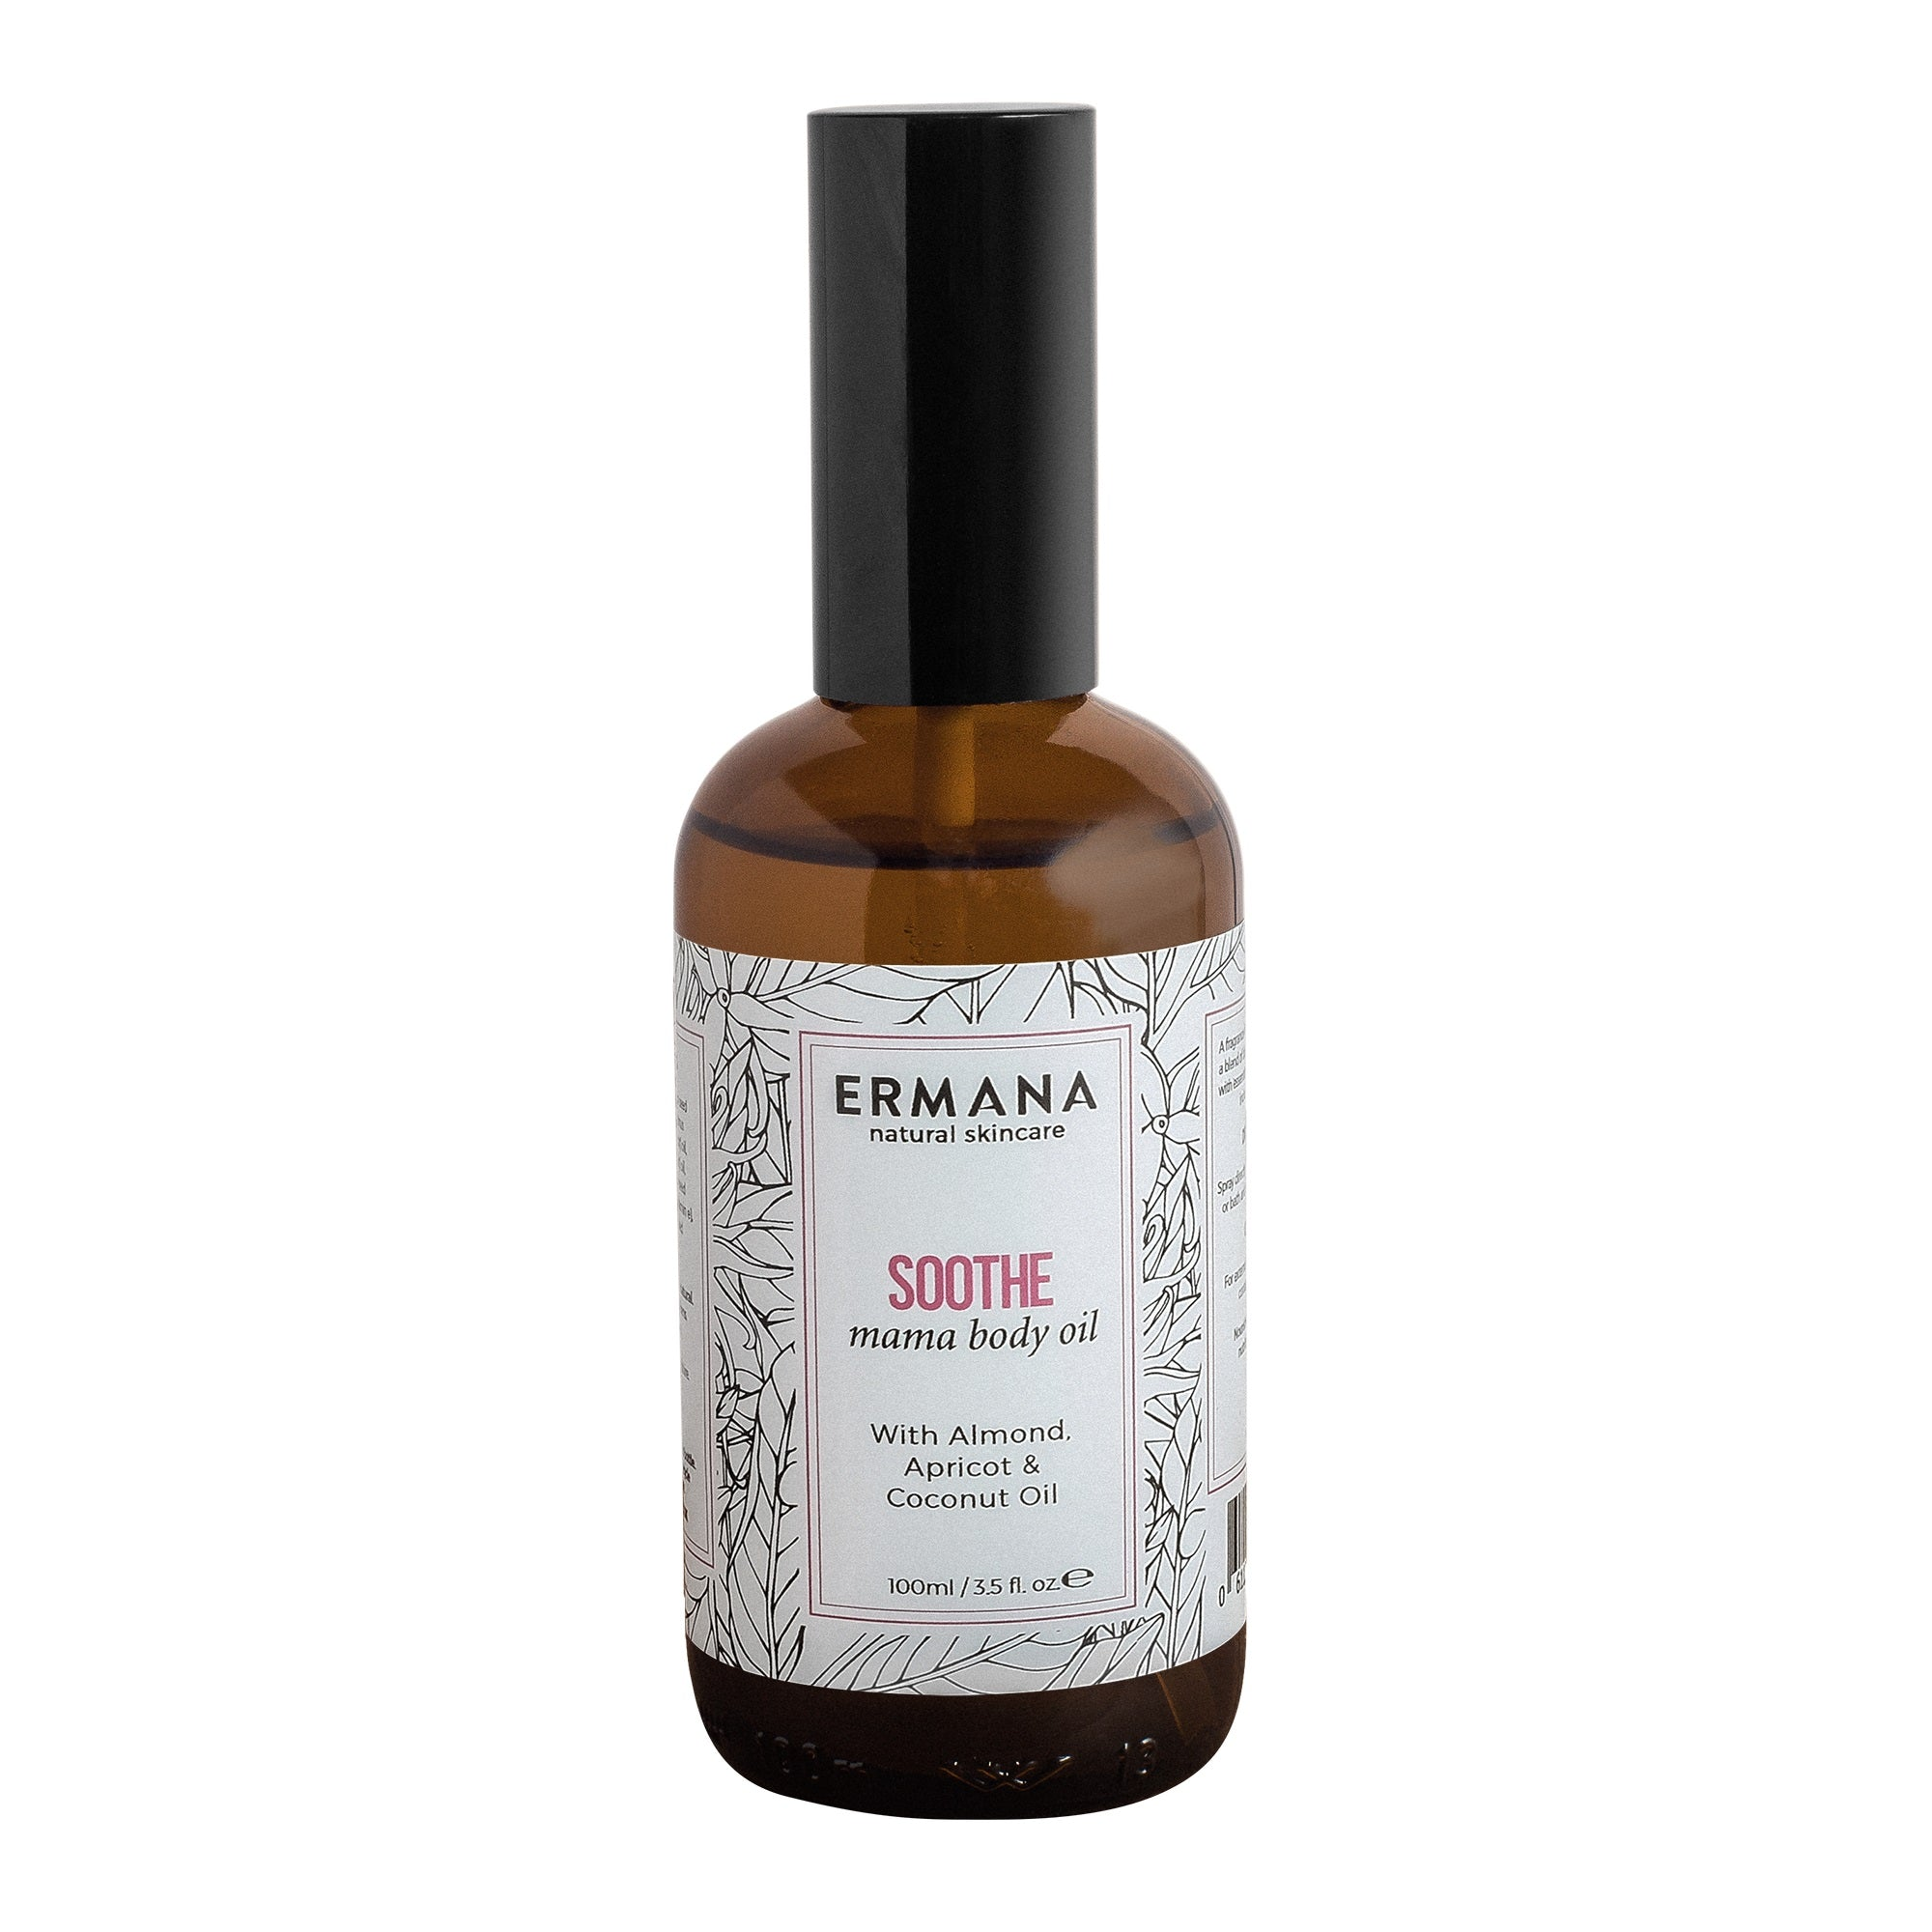 Soothe Mama Body Oil 100ml - Ermana Natural Skincare